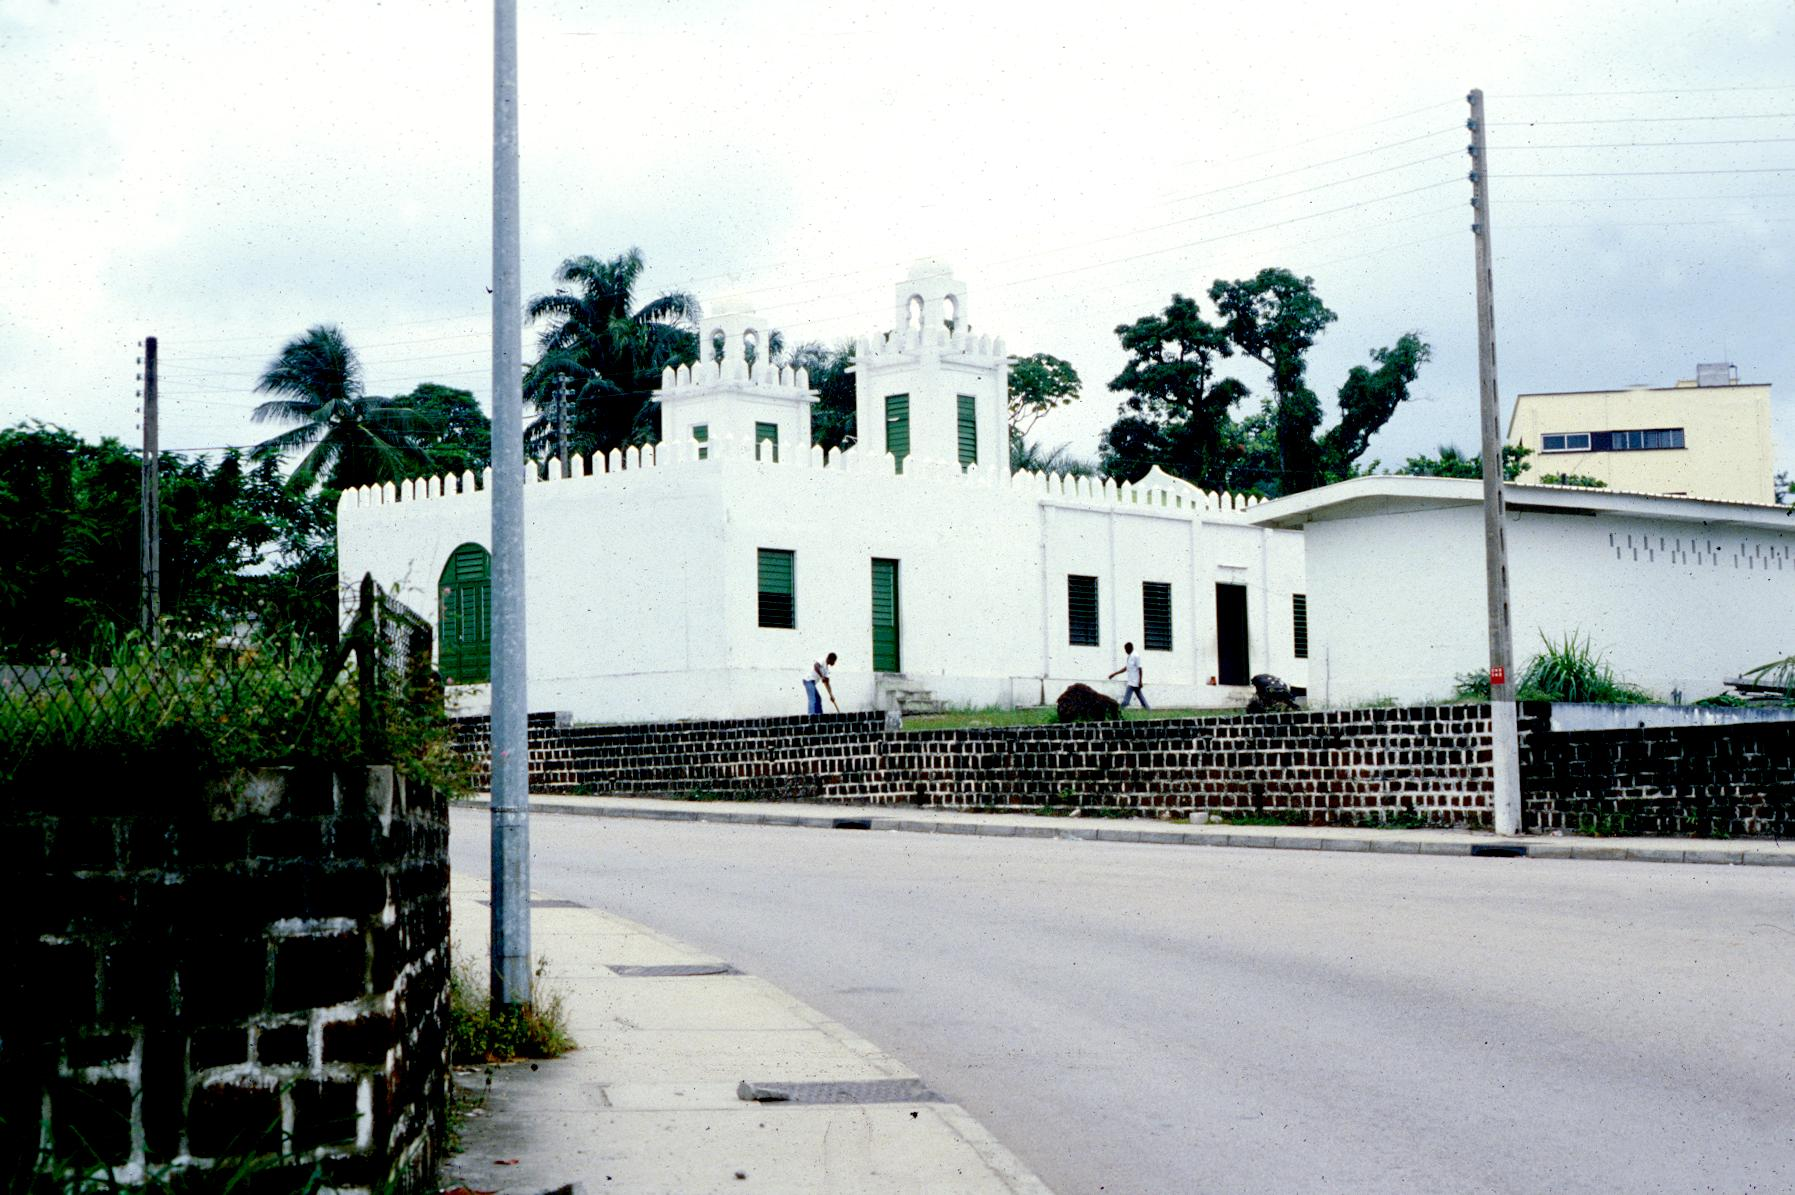 A New Mosque Constructed with Funds from Saudi Arabia